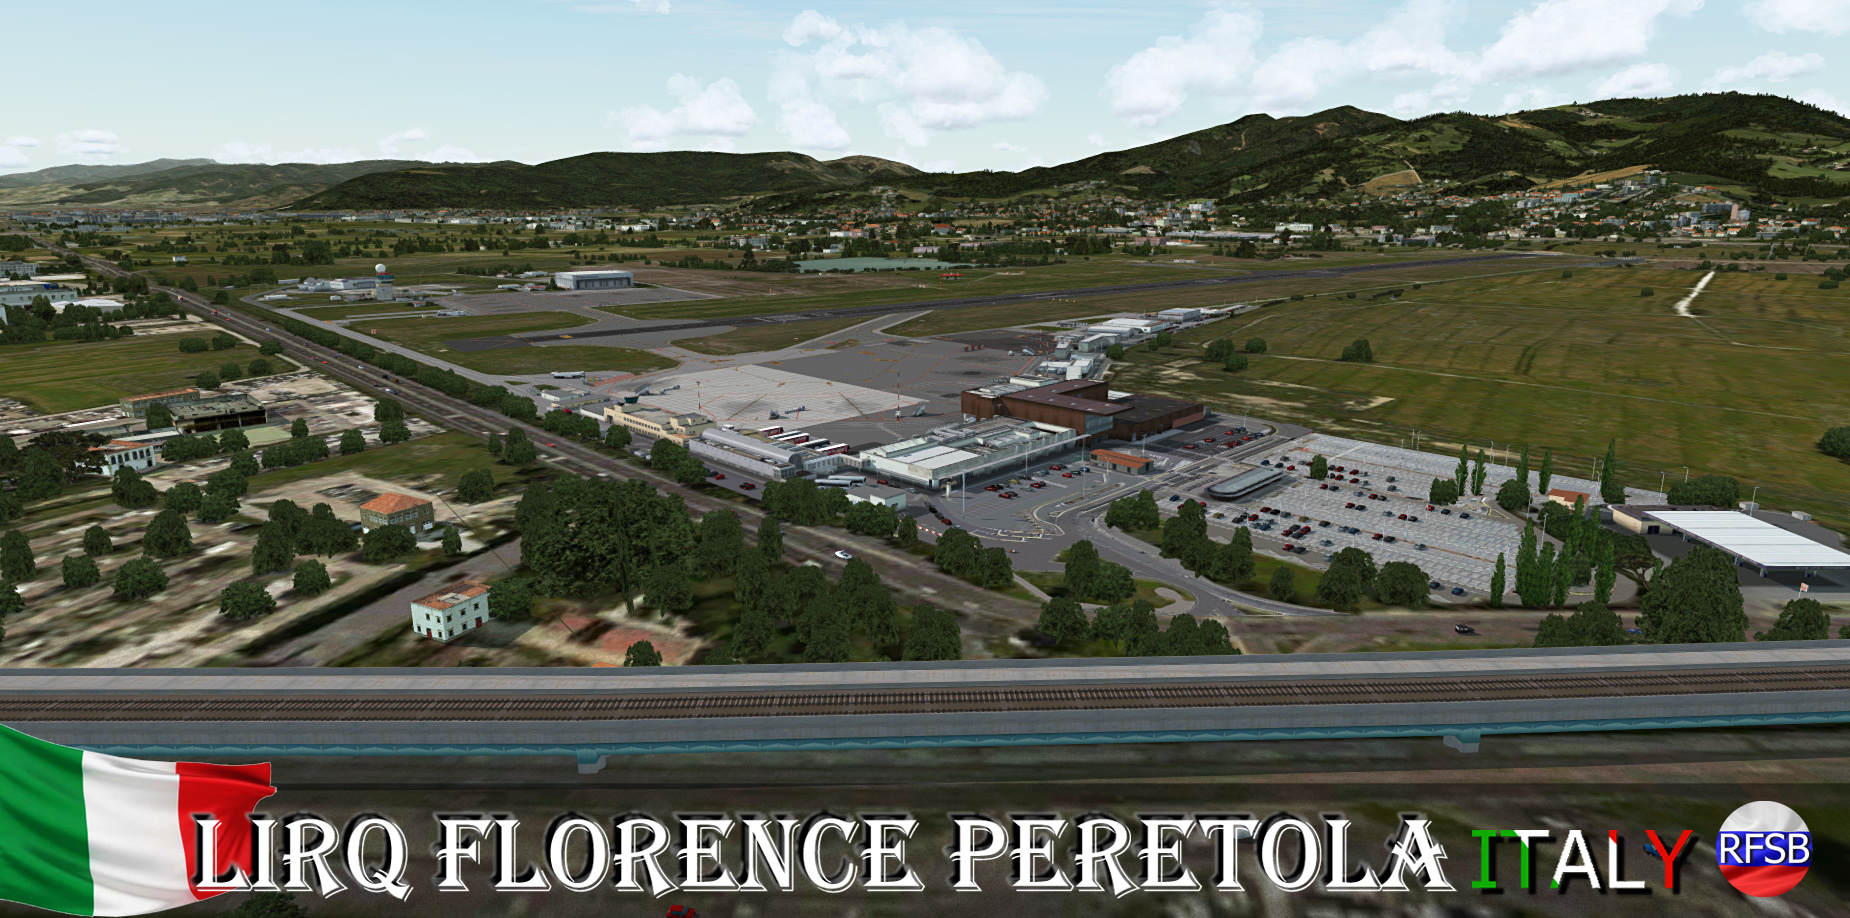 RFSCENERYBUILDING - LIRQ FLORENCE PERETOLA P3D4